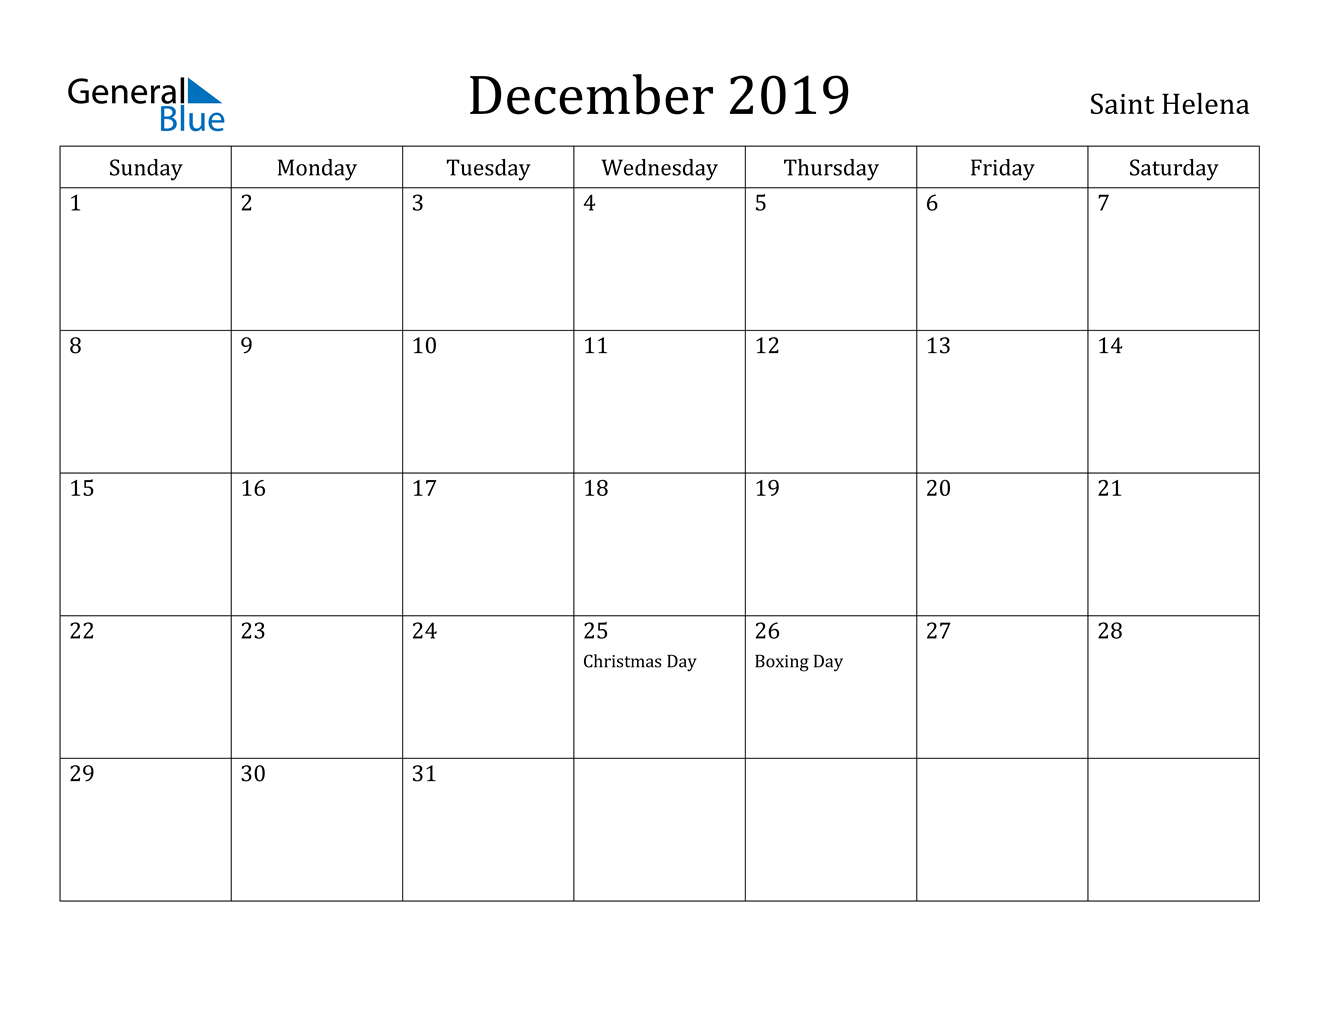 Image of December 2019 Saint Helena Calendar with Holidays Calendar